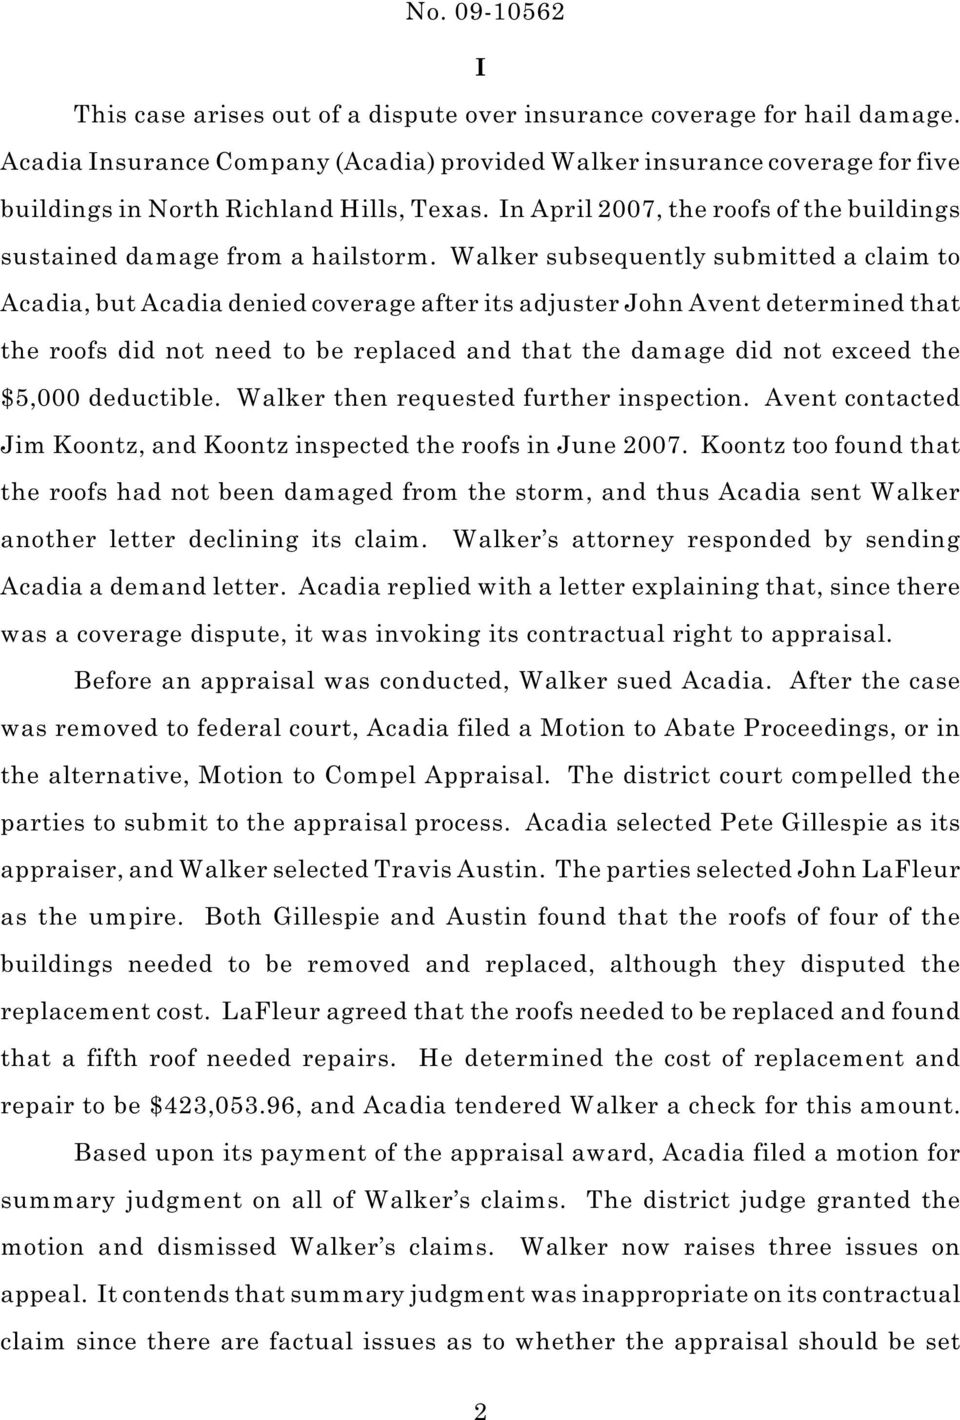 Walker subsequently submitted a claim to Acadia, but Acadia denied coverage after its adjuster John Avent determined that the roofs did not need to be replaced and that the damage did not exceed the